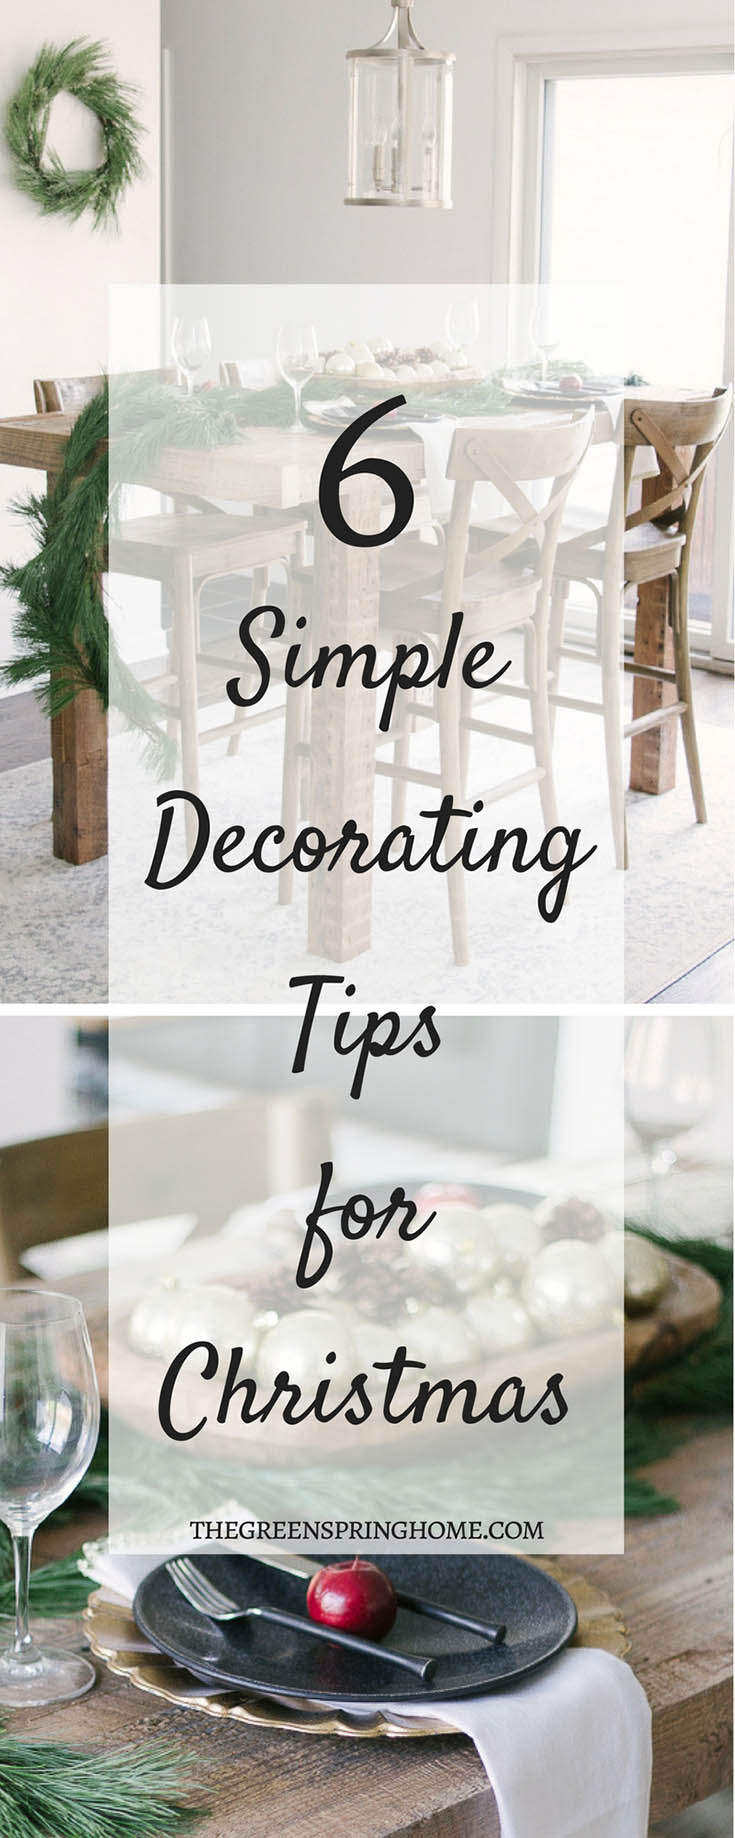 6 Simple Decorating Tips for Christmas